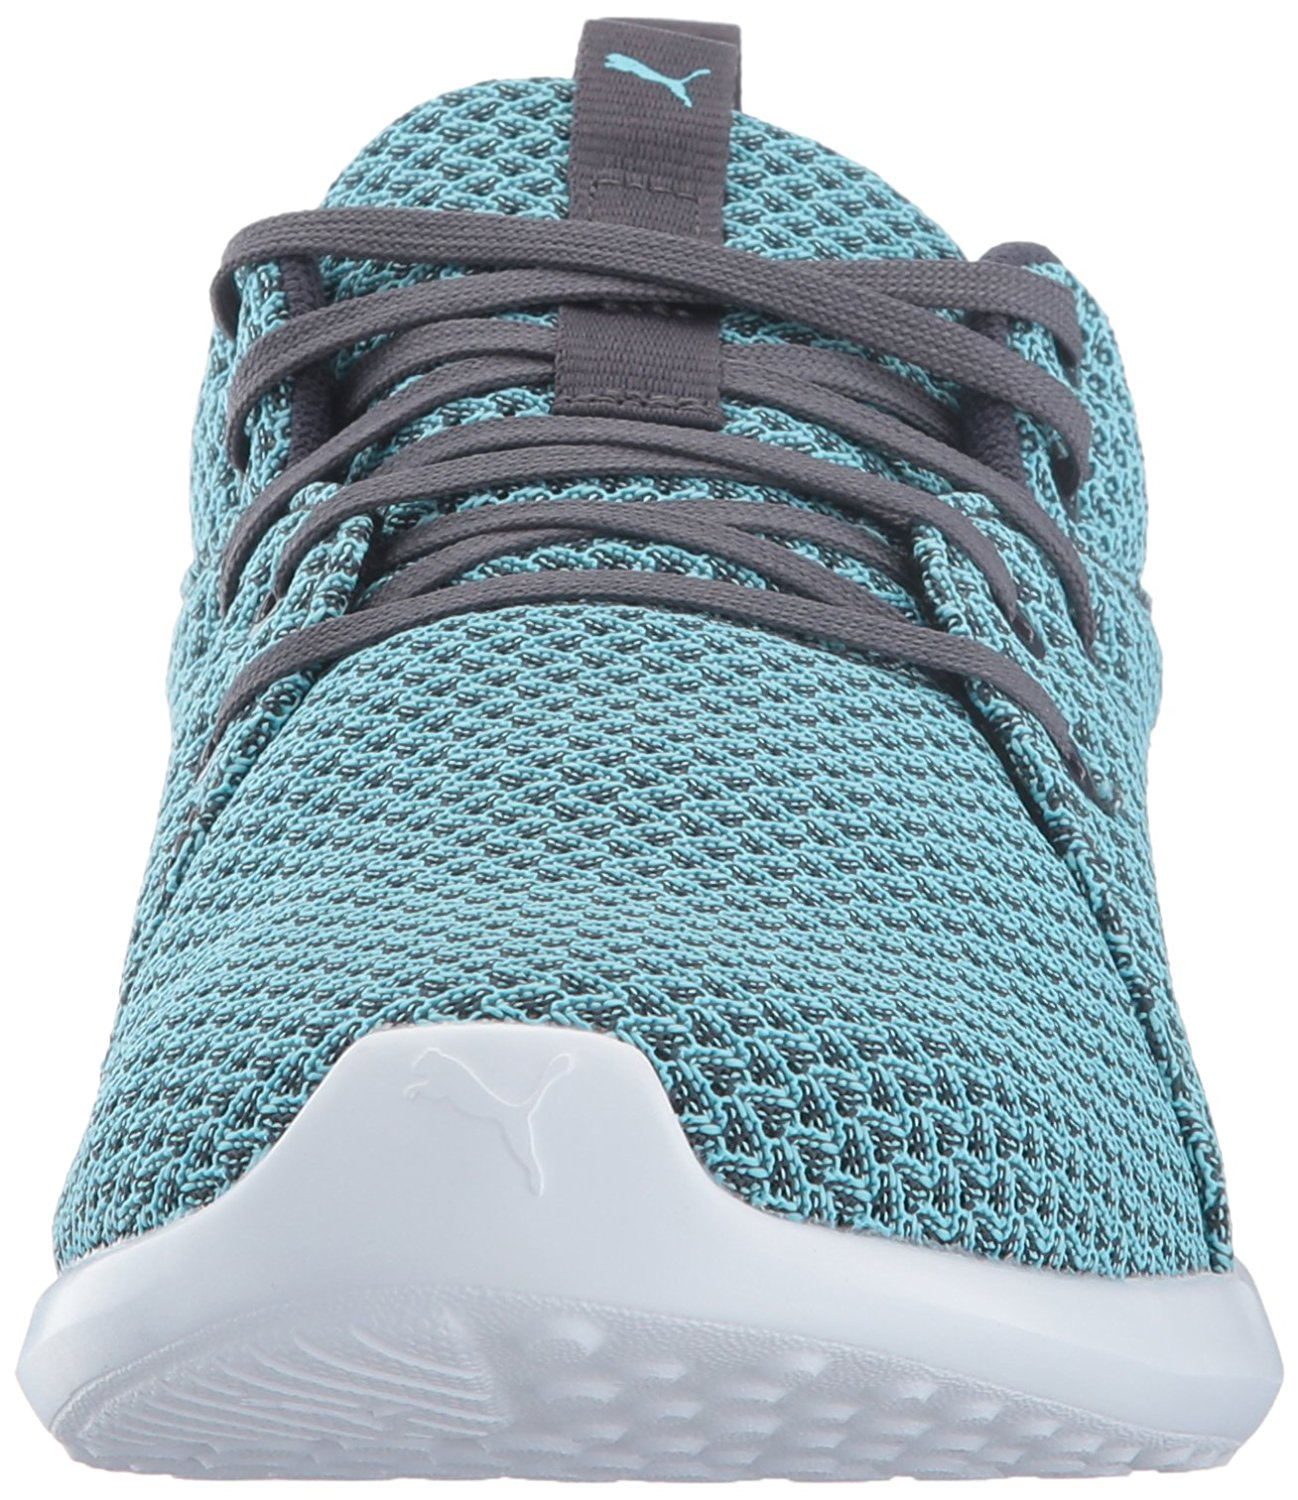 Puma Women's Carson 2 Knit Periscope-Nrgy Turquoise Ankle-High Fabric Fashion Sneaker - 9M